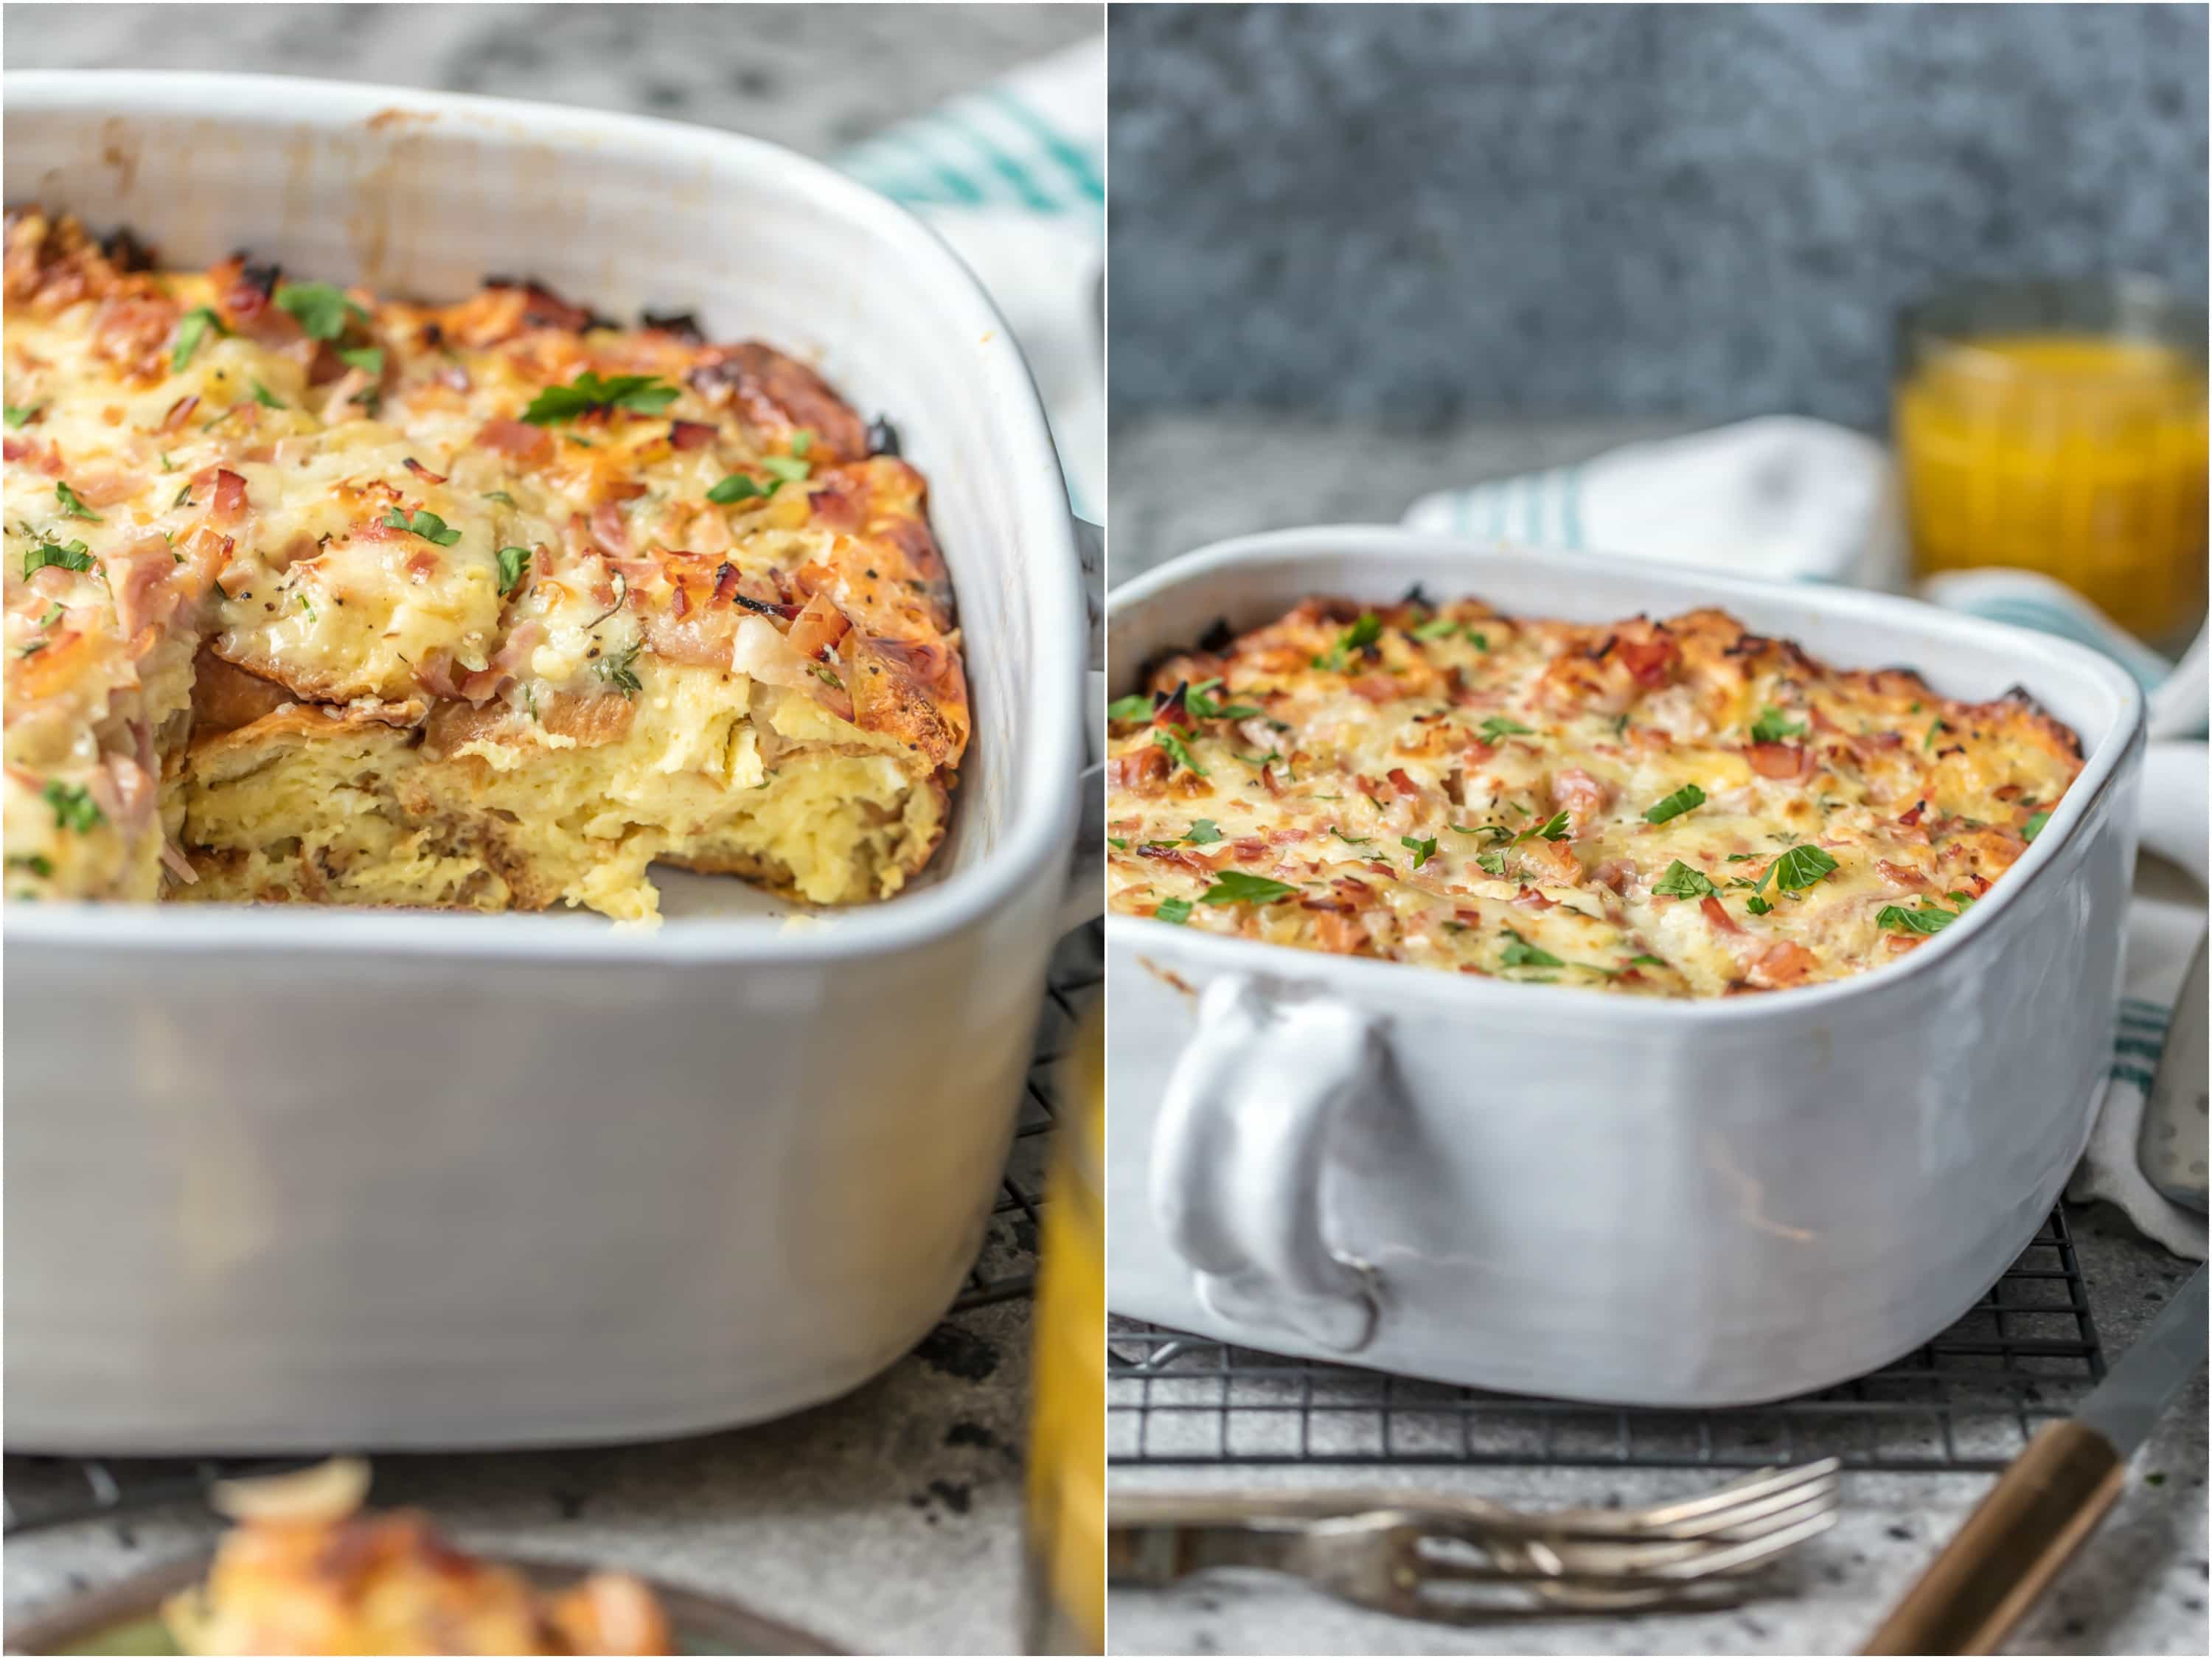 This HAM AND CHEESE BREAKFAST CASSEROLE is our favorite make ahead breakfast for any special occasion. Loaded with ham, cheese, , bread, eggs, herbs, and more! Sure to please everyone and just so easy to make!